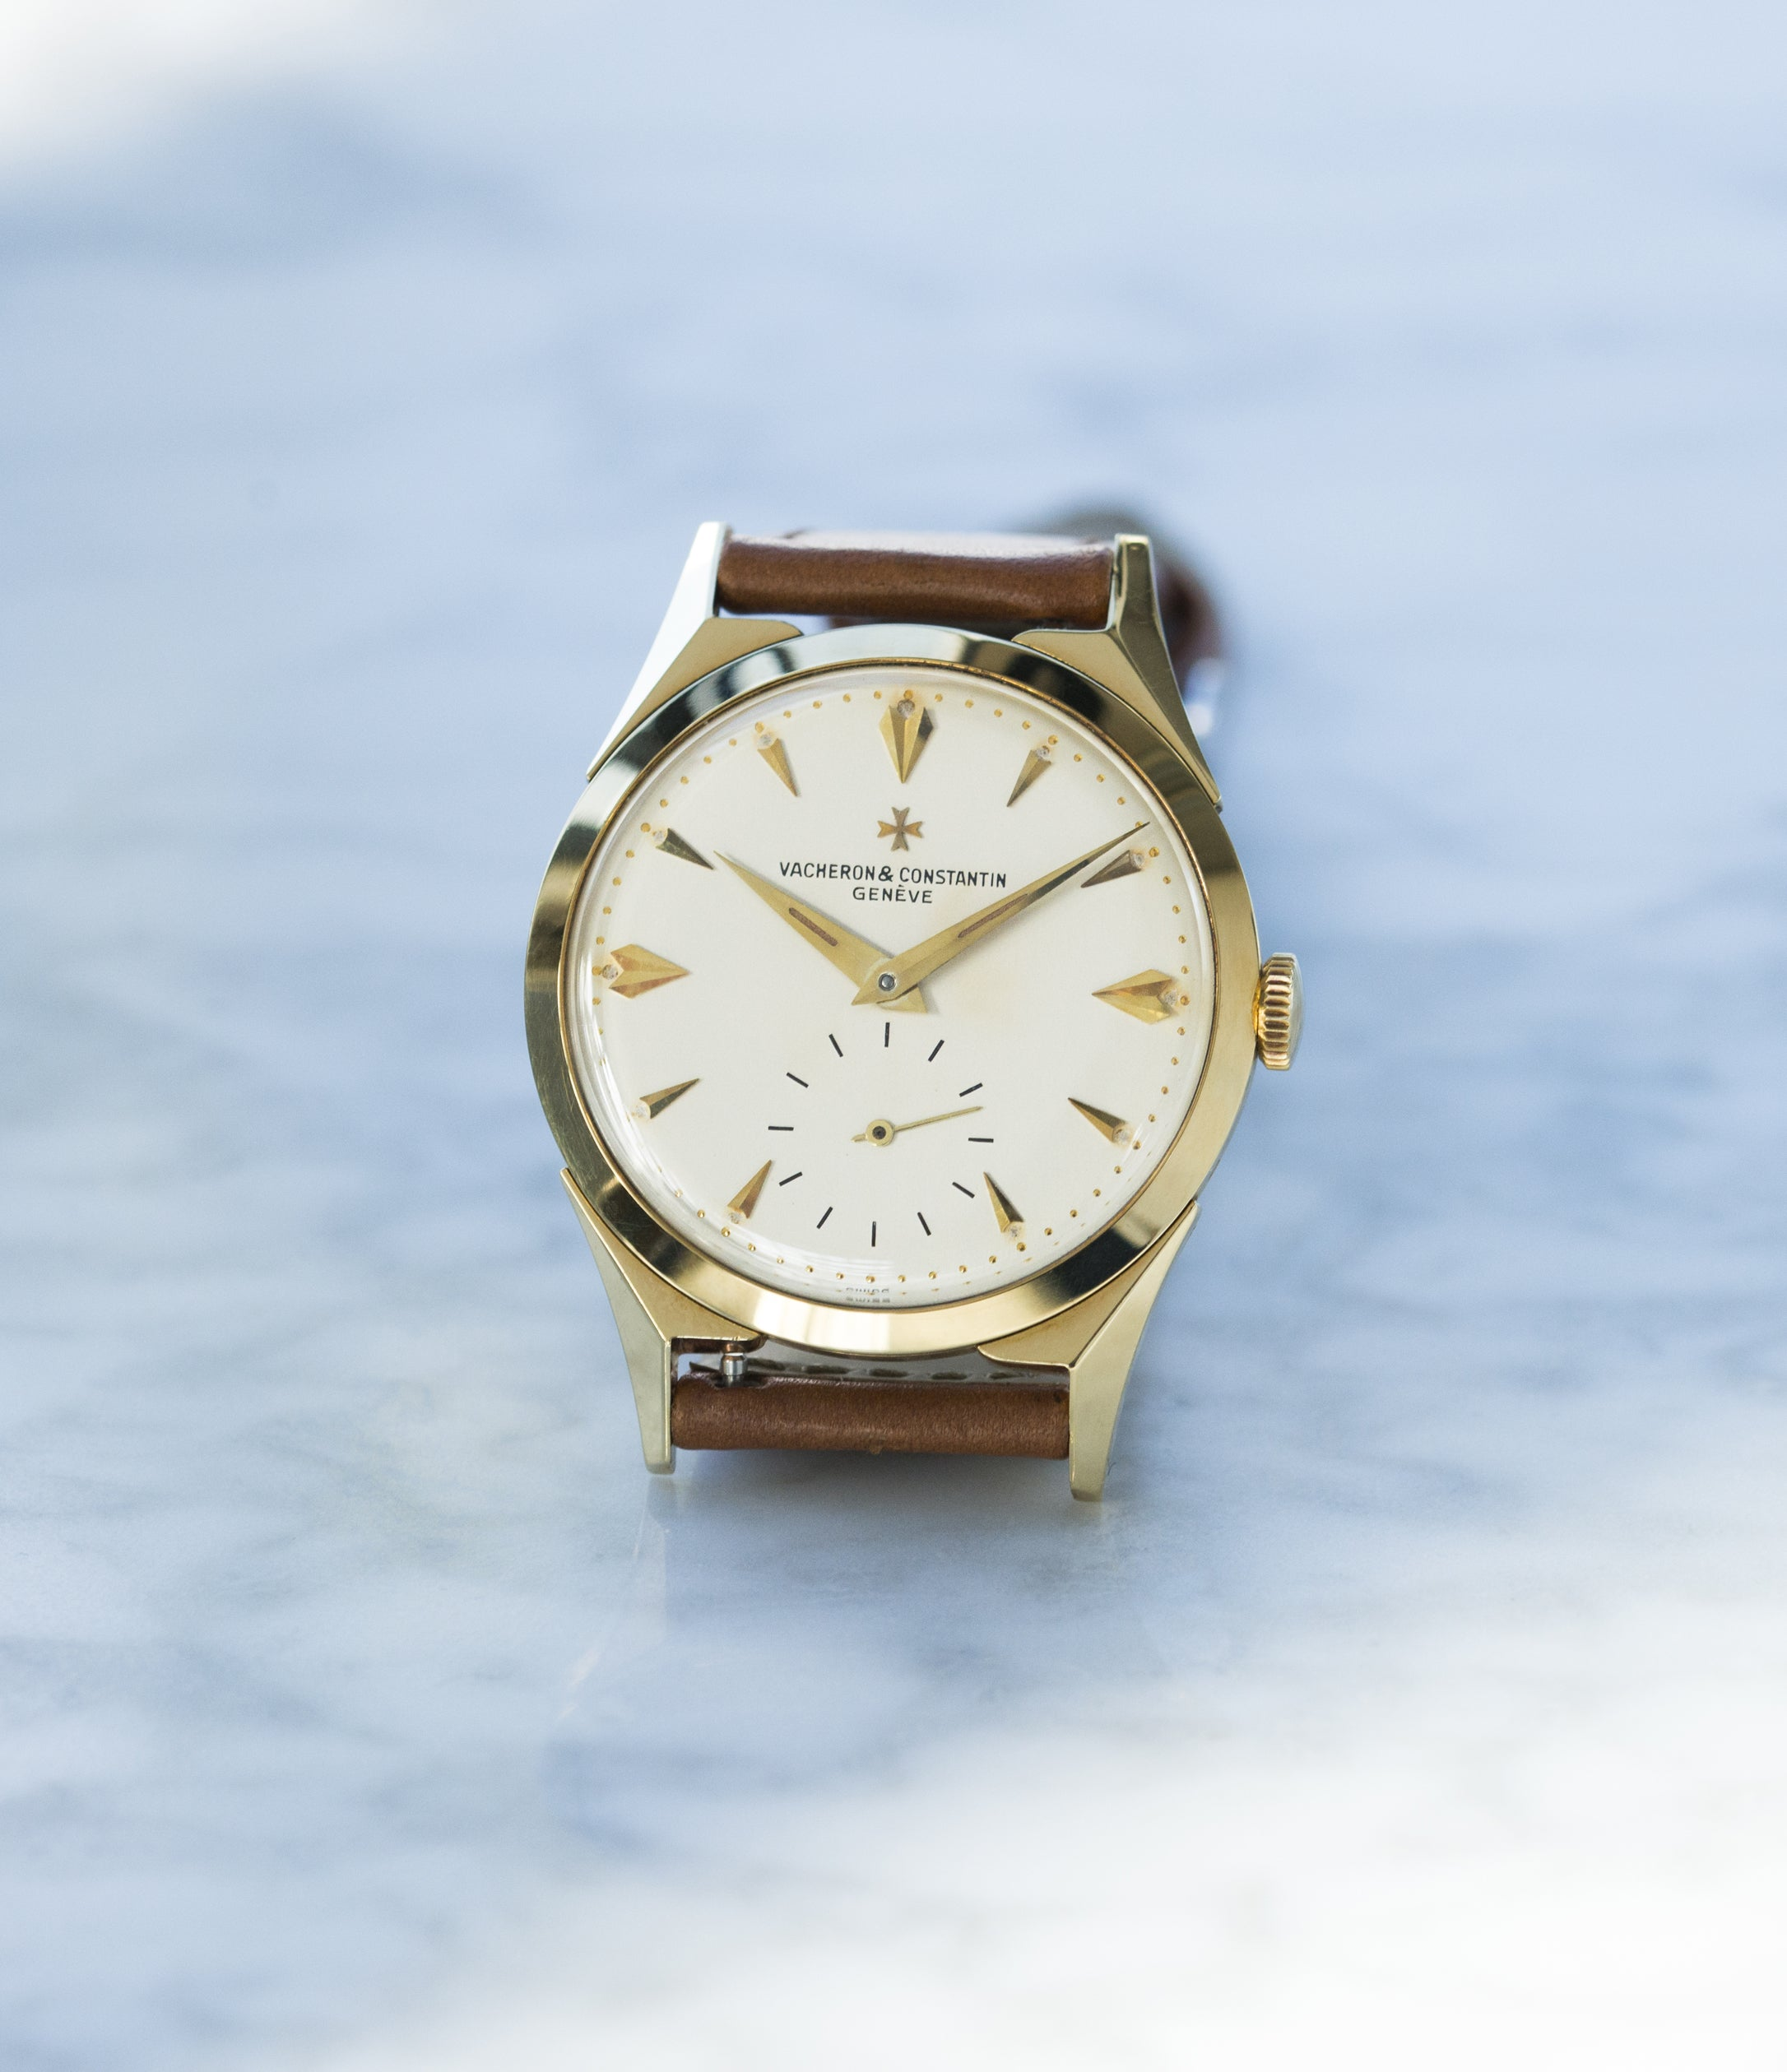 buying Vacheron Constantin 6066 yellow gold time-only dress watch for sale online at A Collected Man London UK specialist of rare watches